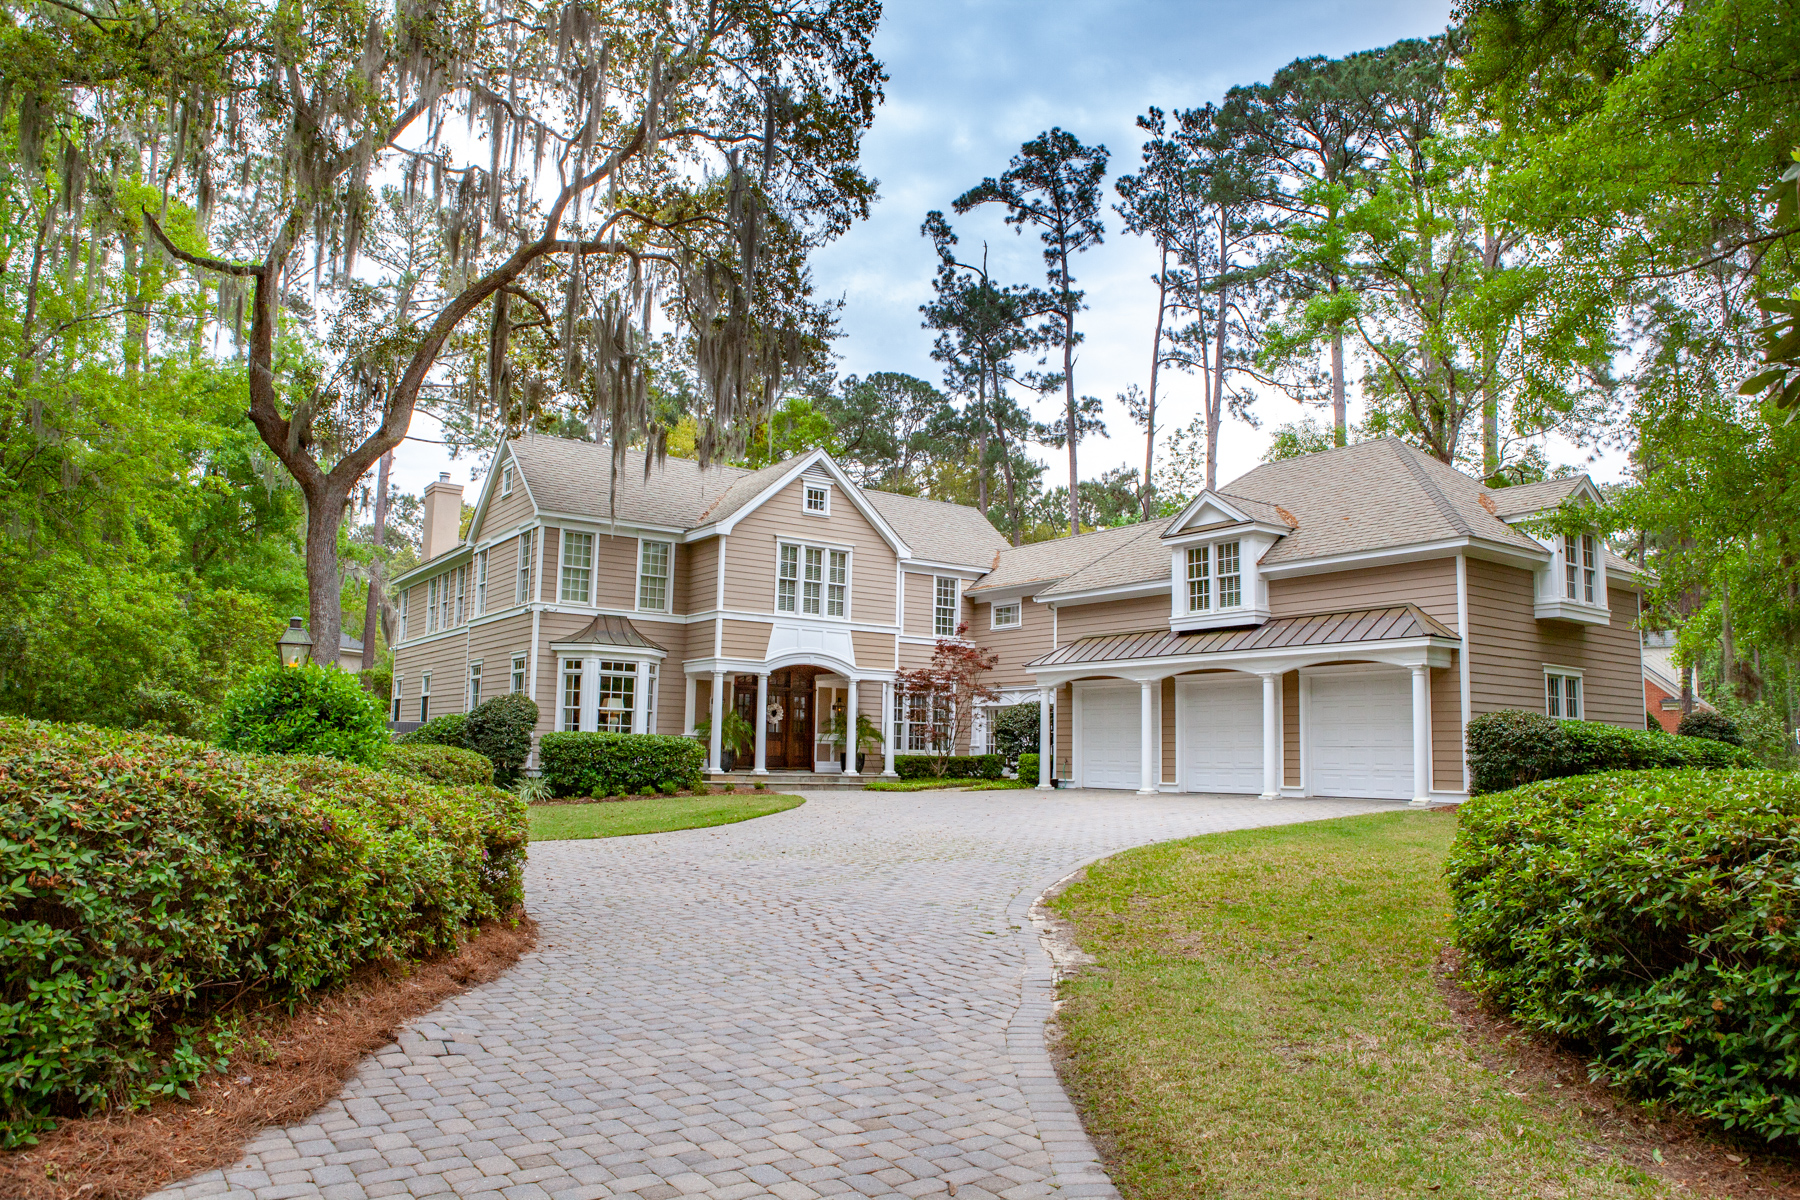 Single Family Homes for Sale at 18 Tidewater Way Skidaway Island, Georgia 31411 United States